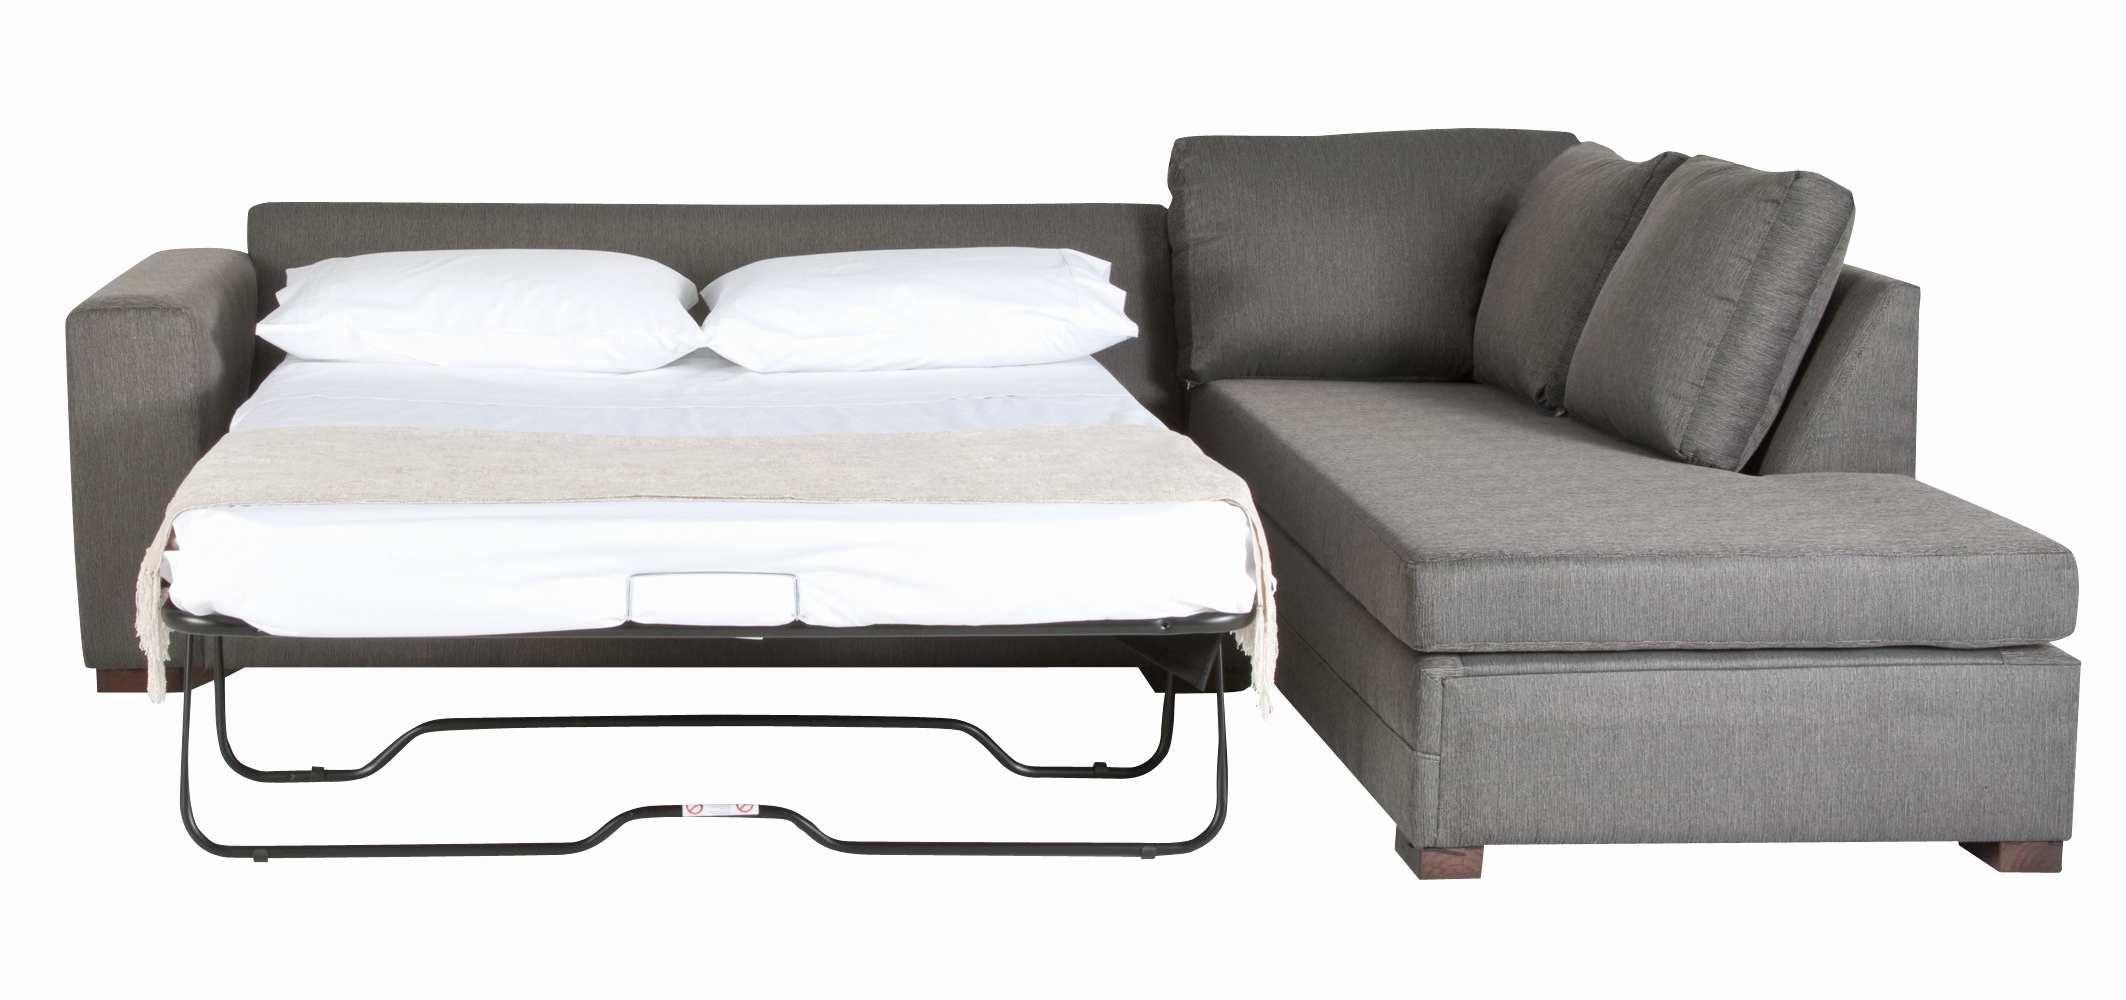 Awesome Sofa Bed Under 300 2018 – Couches And Sofas Ideas In Well Known Kmart Sectional Sofas (View 1 of 20)